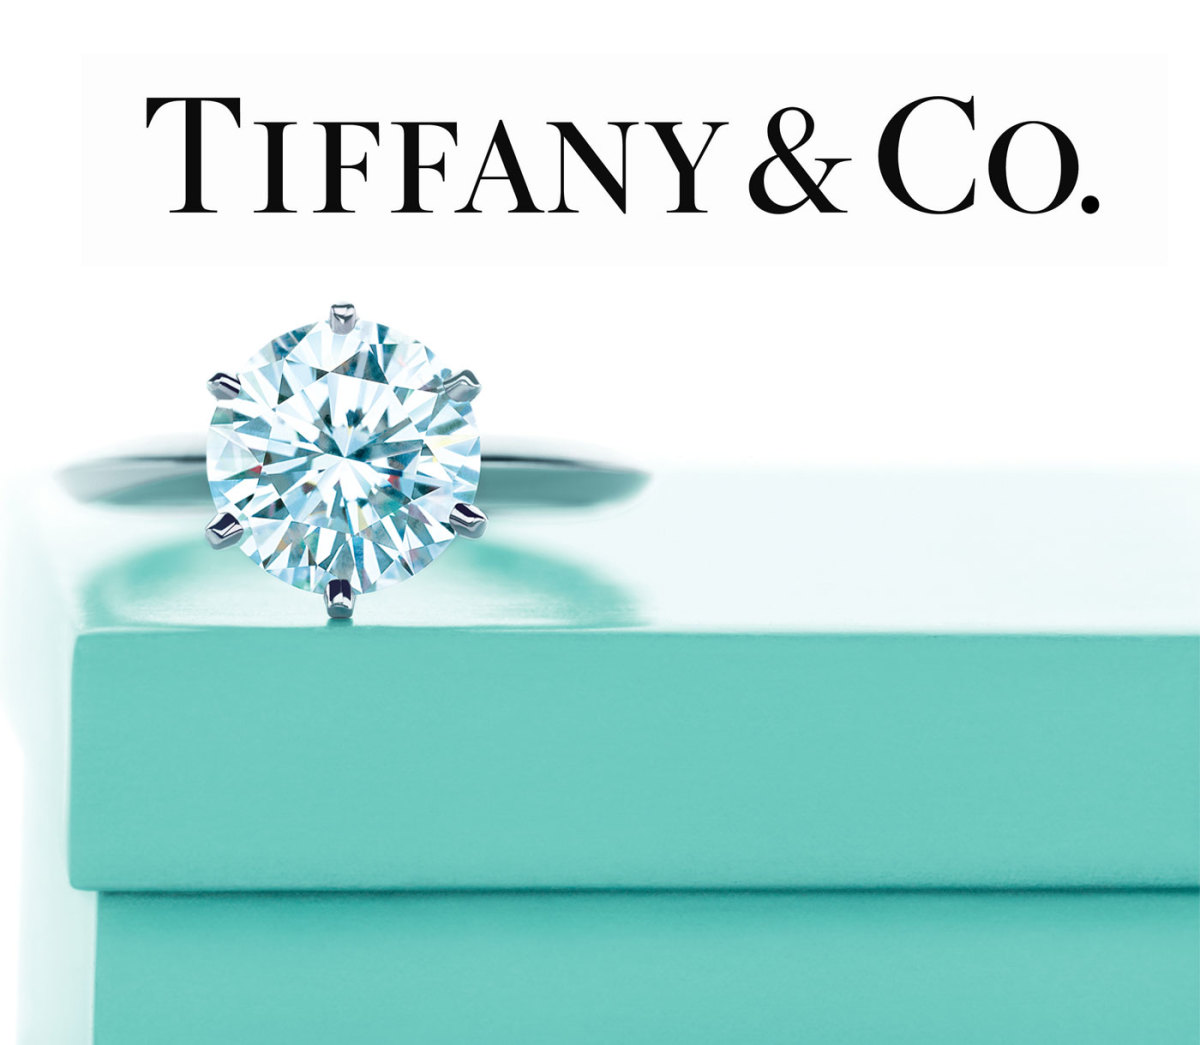 Tiffany co facts you may not know bellatory for Where is tiffany and co located